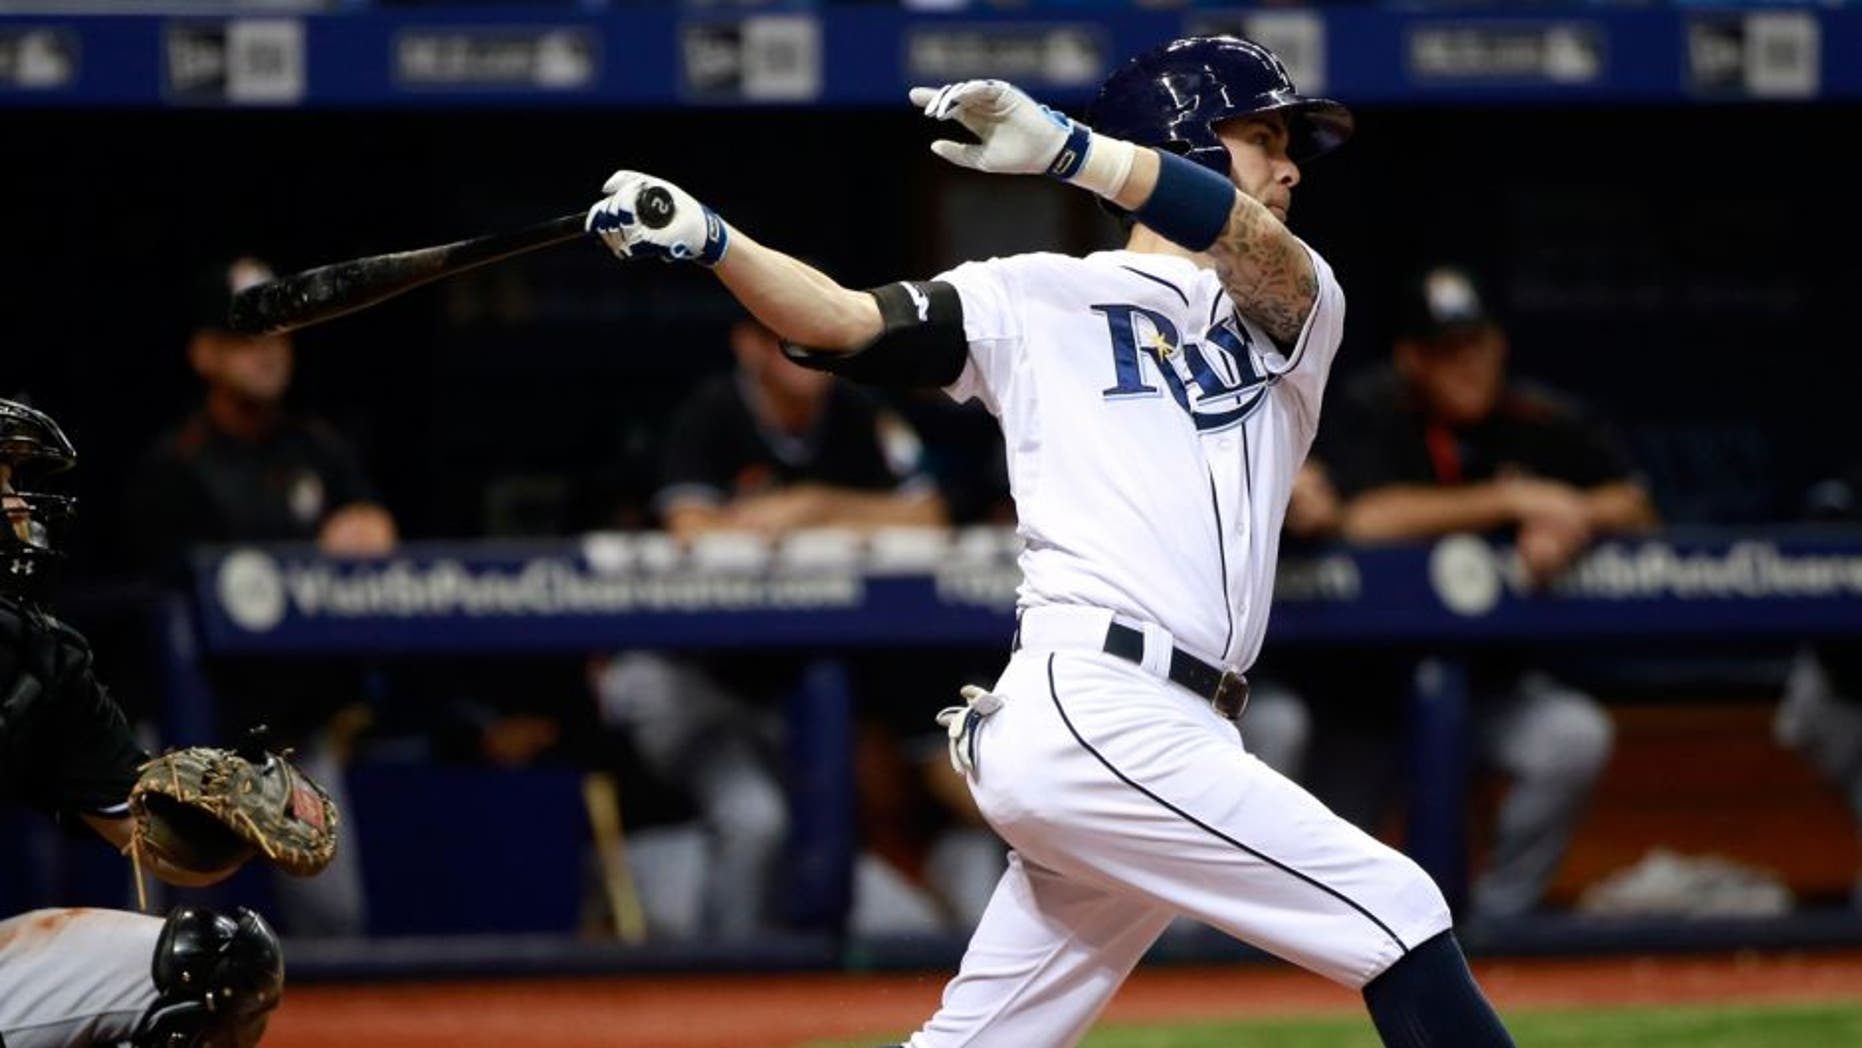 Sep 30, 2015; St. Petersburg, FL, USA; Tampa Bay Rays second baseman Nick Franklin (2) hits a home run during the fifth inning against the Miami Marlins at Tropicana Field. Mandatory Credit: Kim Klement-USA TODAY Sports